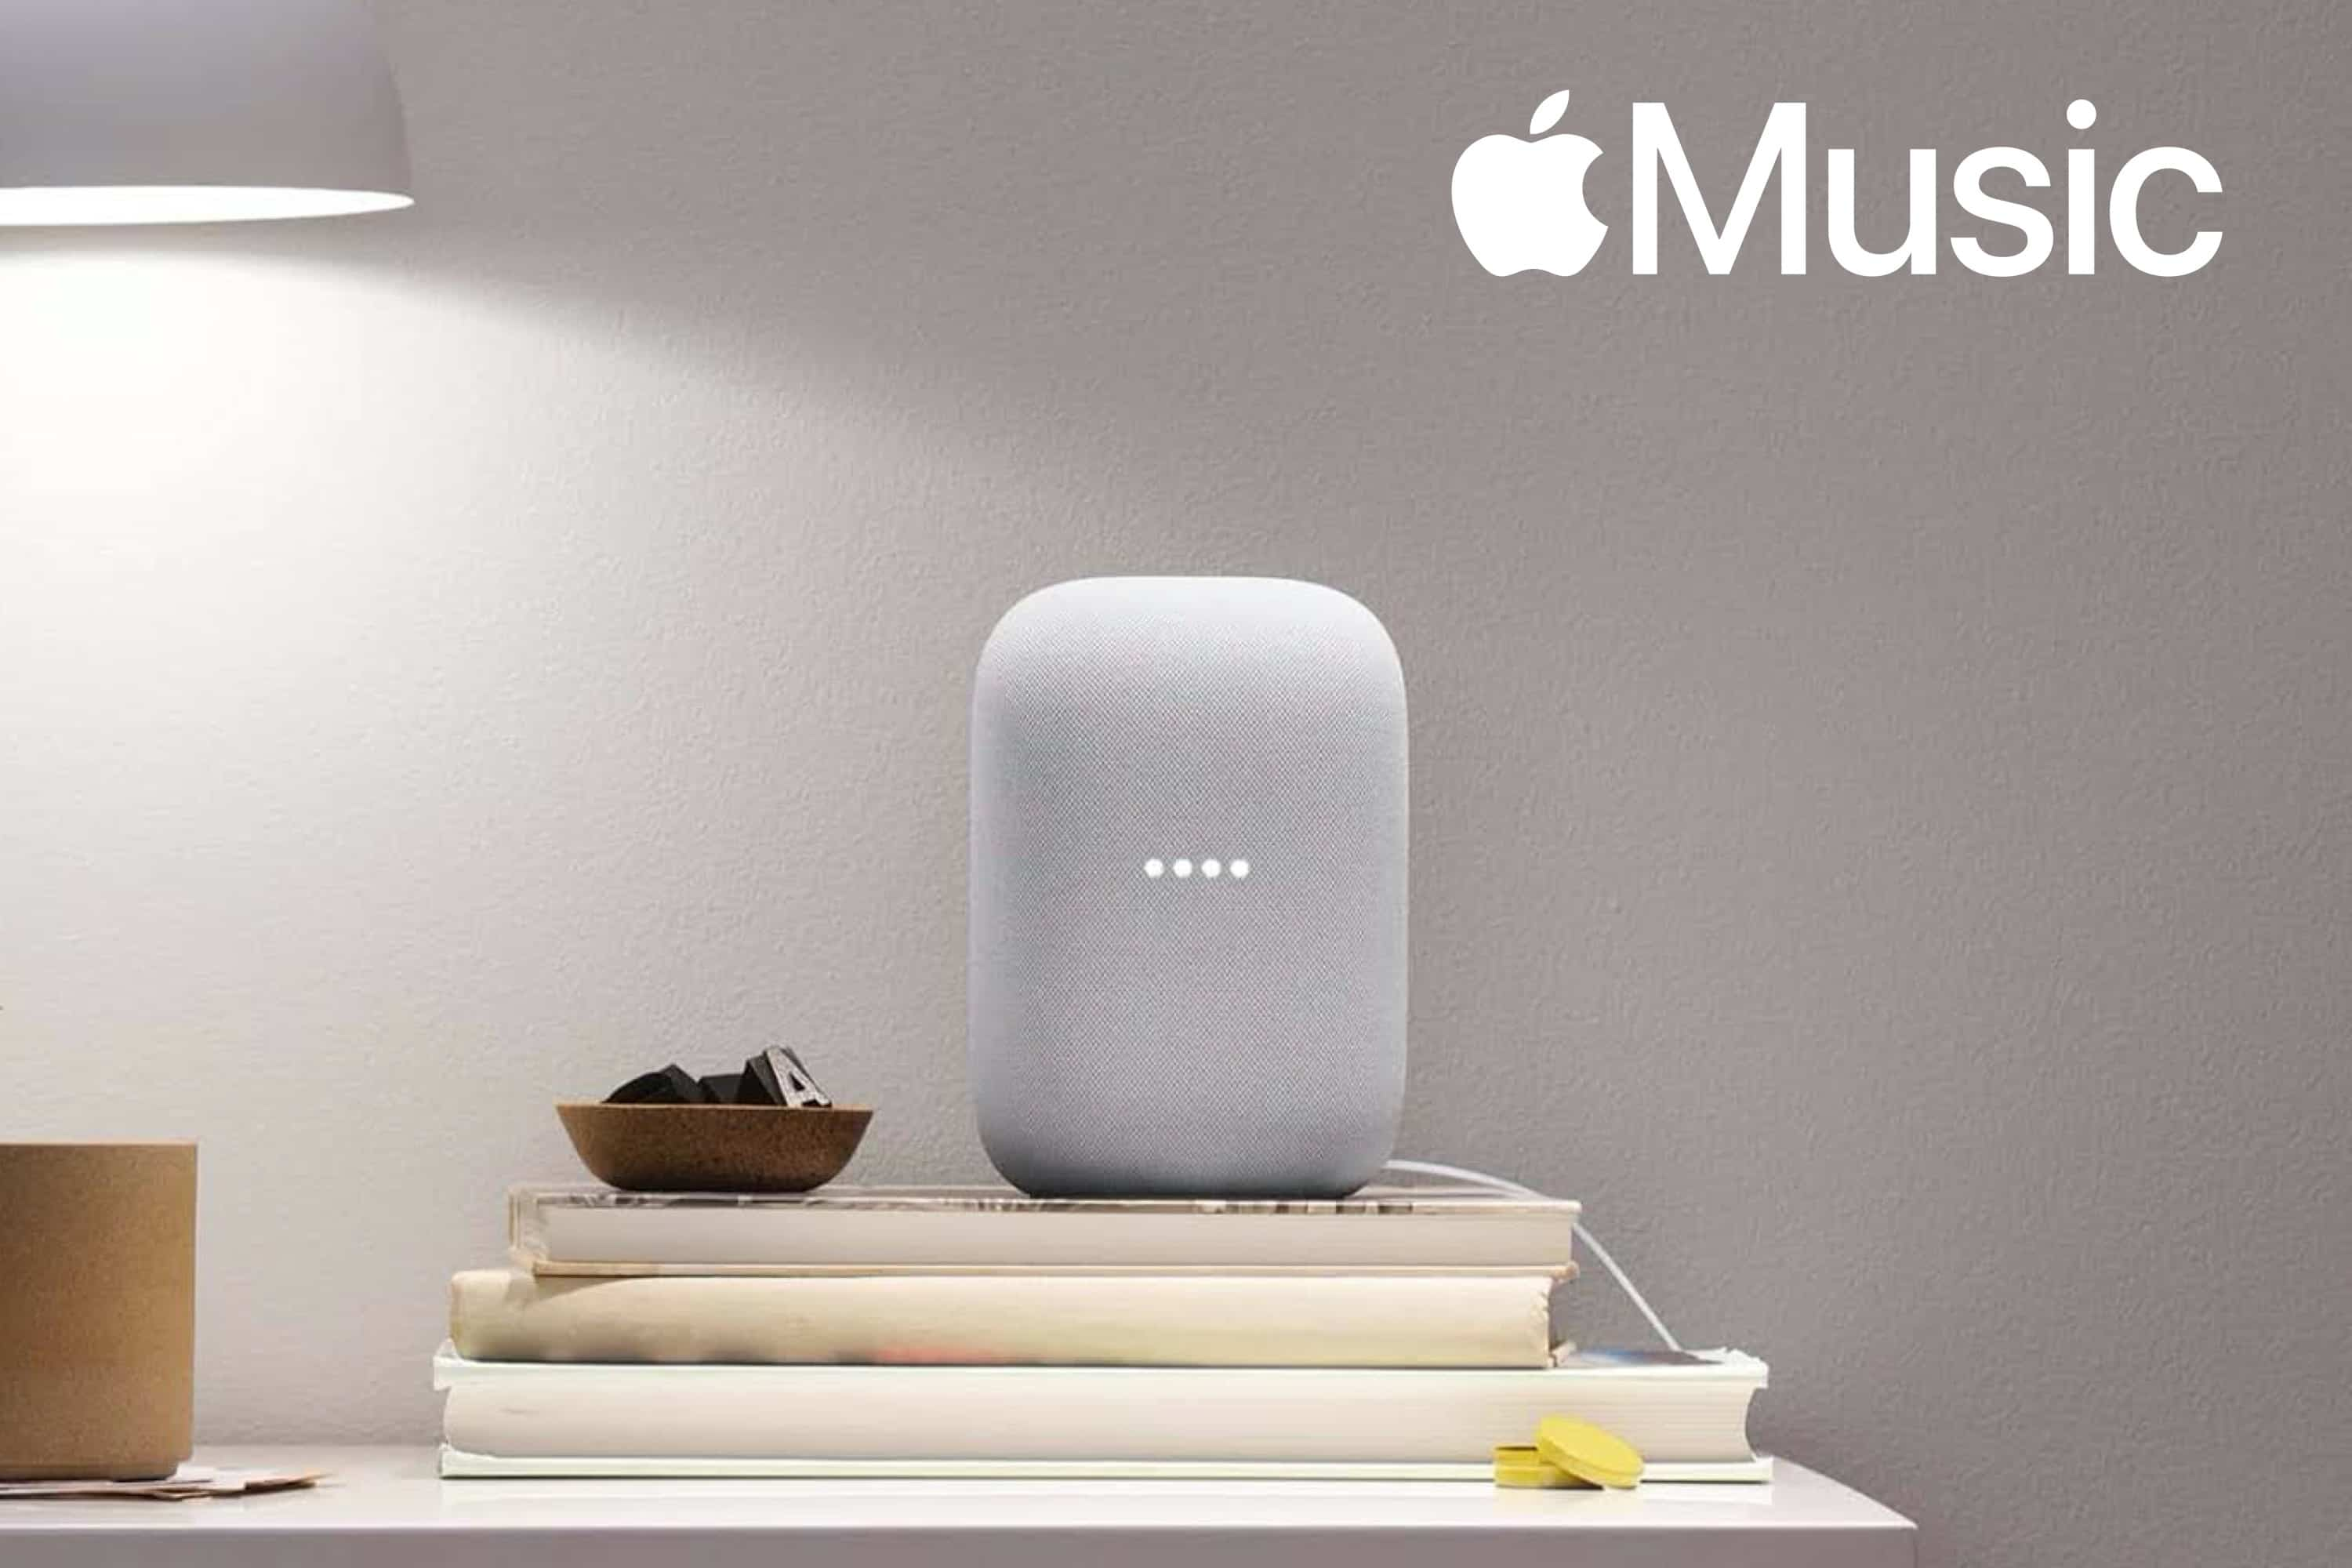 google-assistant-supported-devices-welcome-apple-music-20201207-1